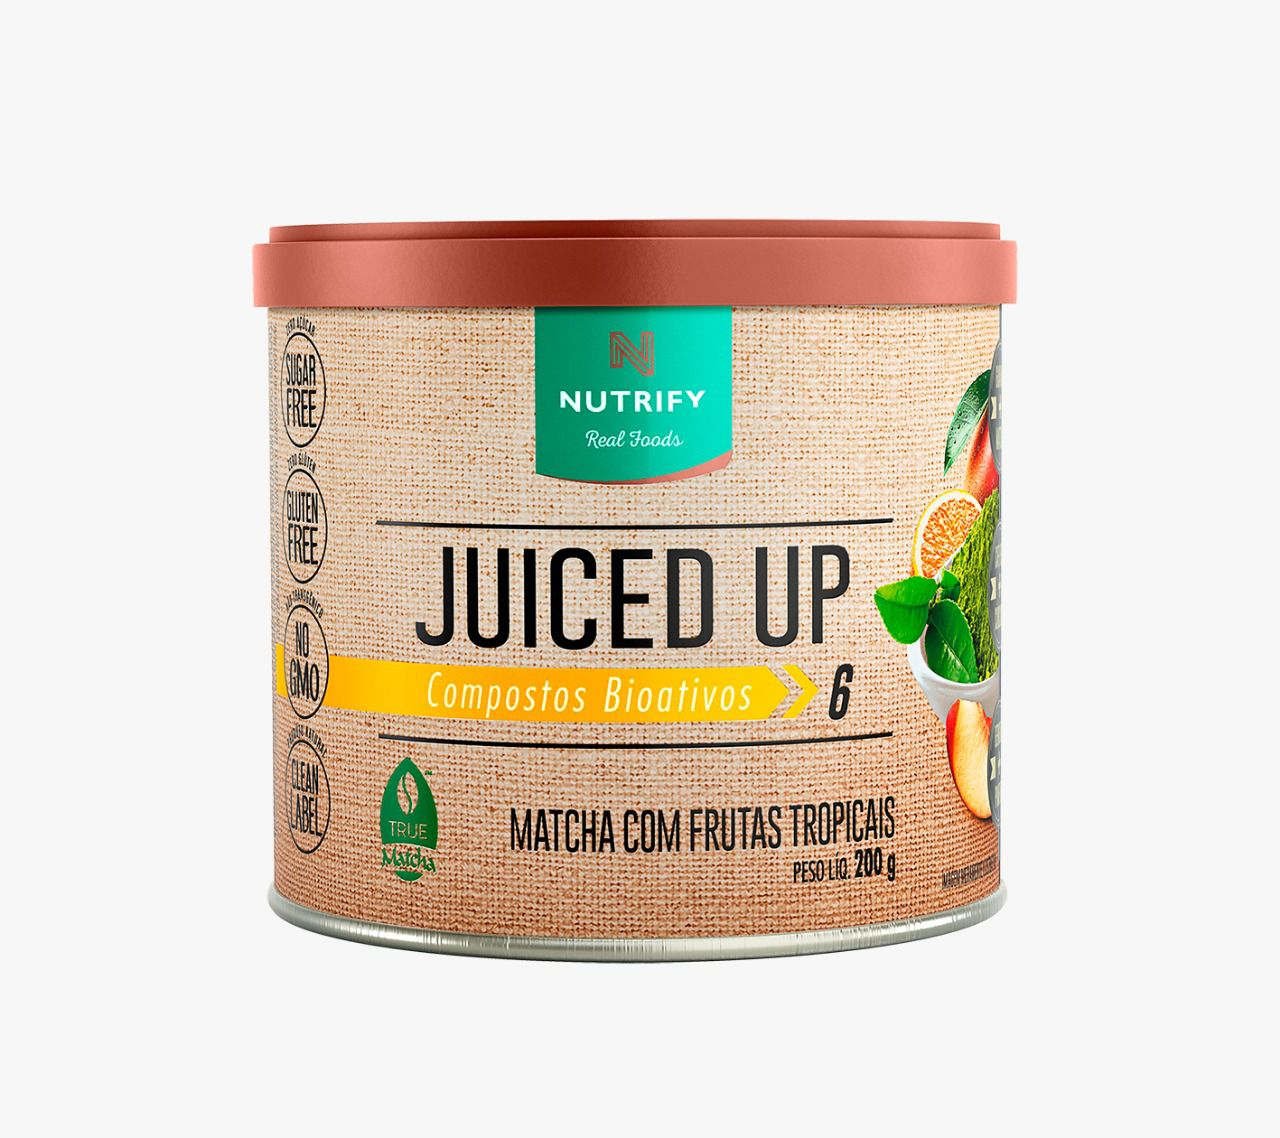 JUICED UP MATCHA E FRUTAS TROPICAIS - 200G - NUTRIFY